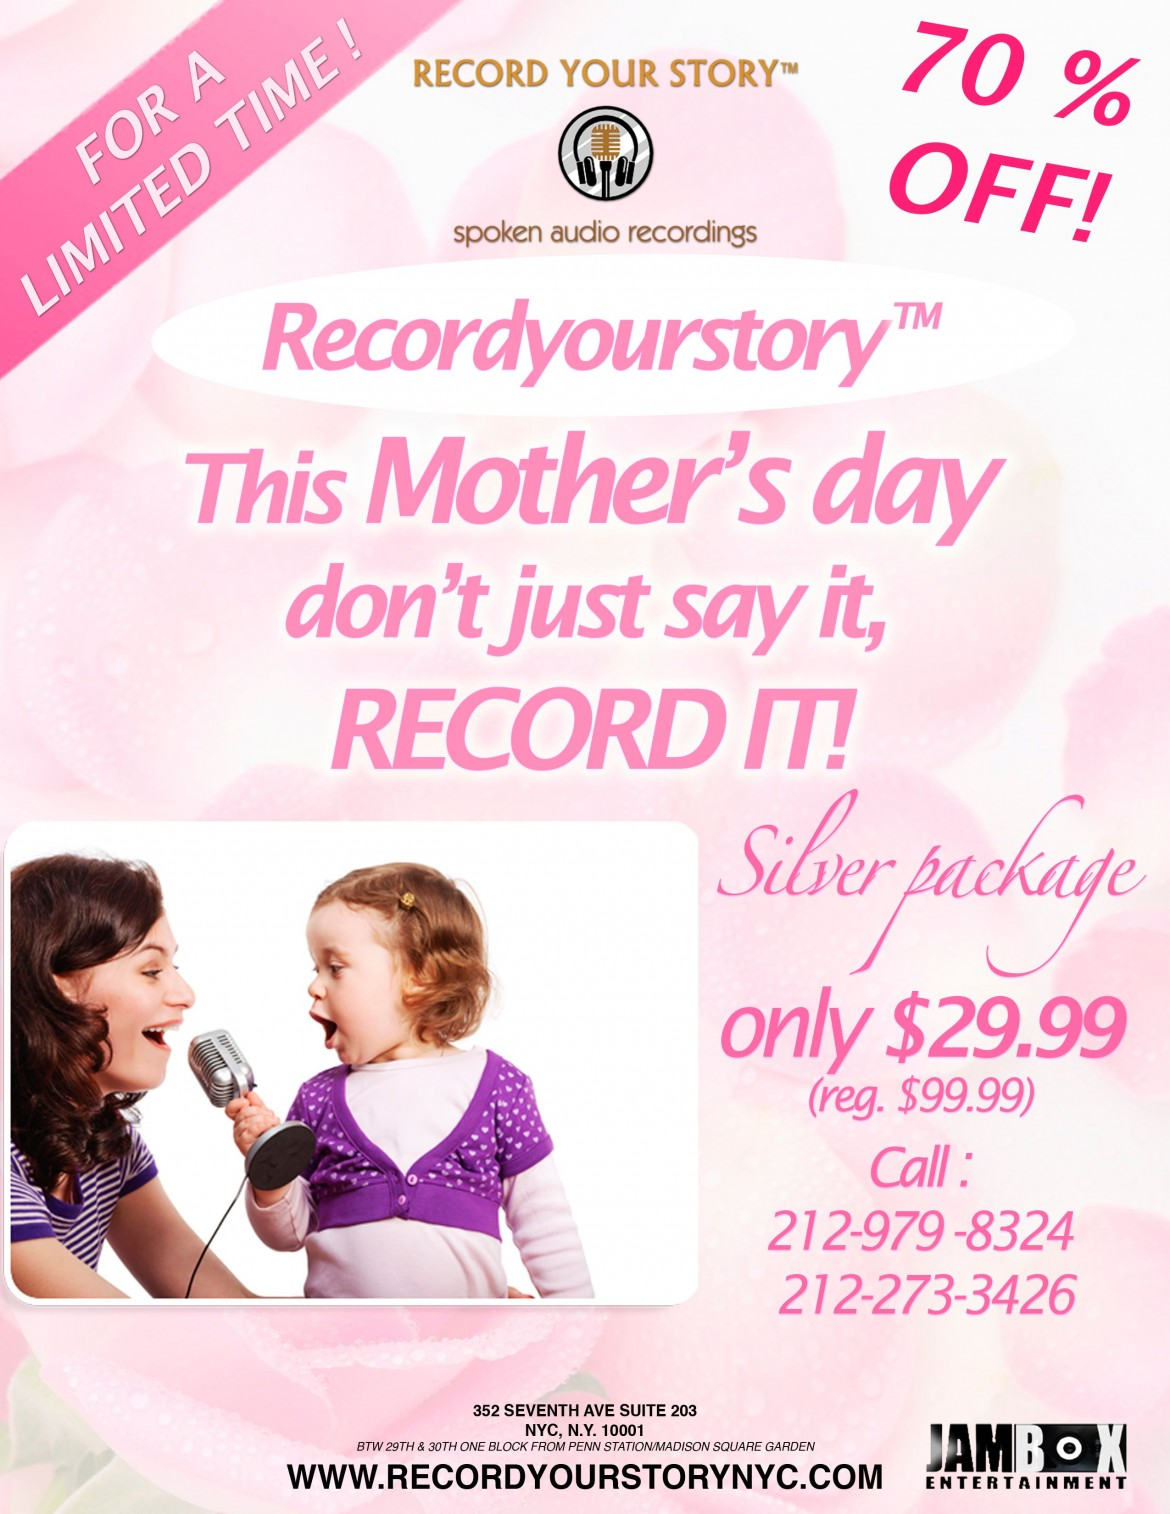 Need A Great Gift For Mom This Mother's Day? Check out RECORD YOUR STORY™ at JAMBOX!